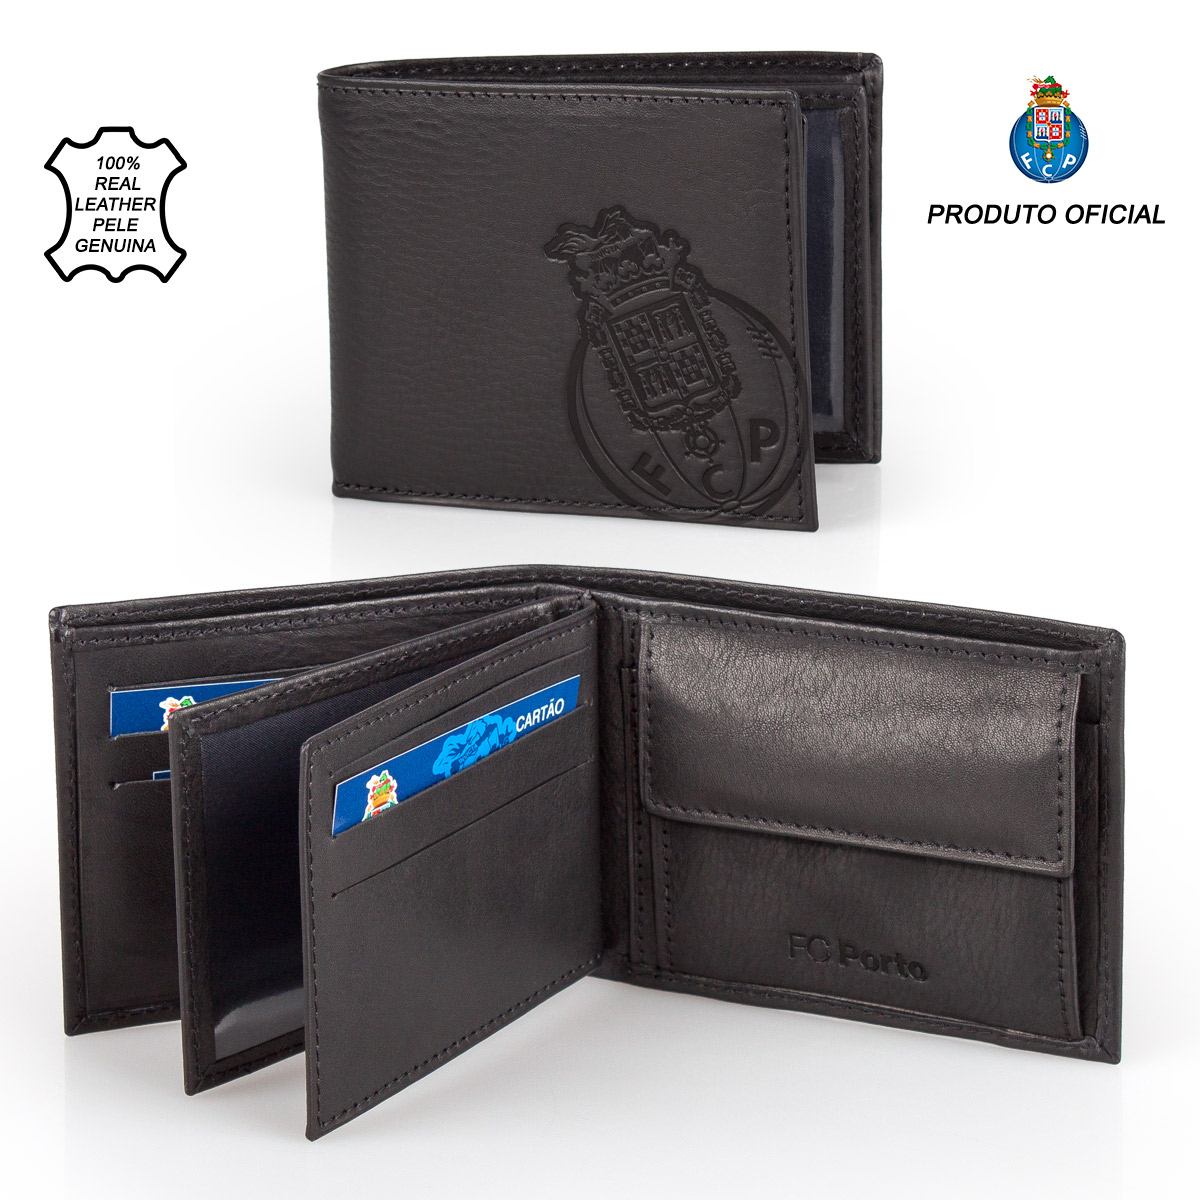 Leather Wallet F.C. PORTO Black 11.5cm – image 1